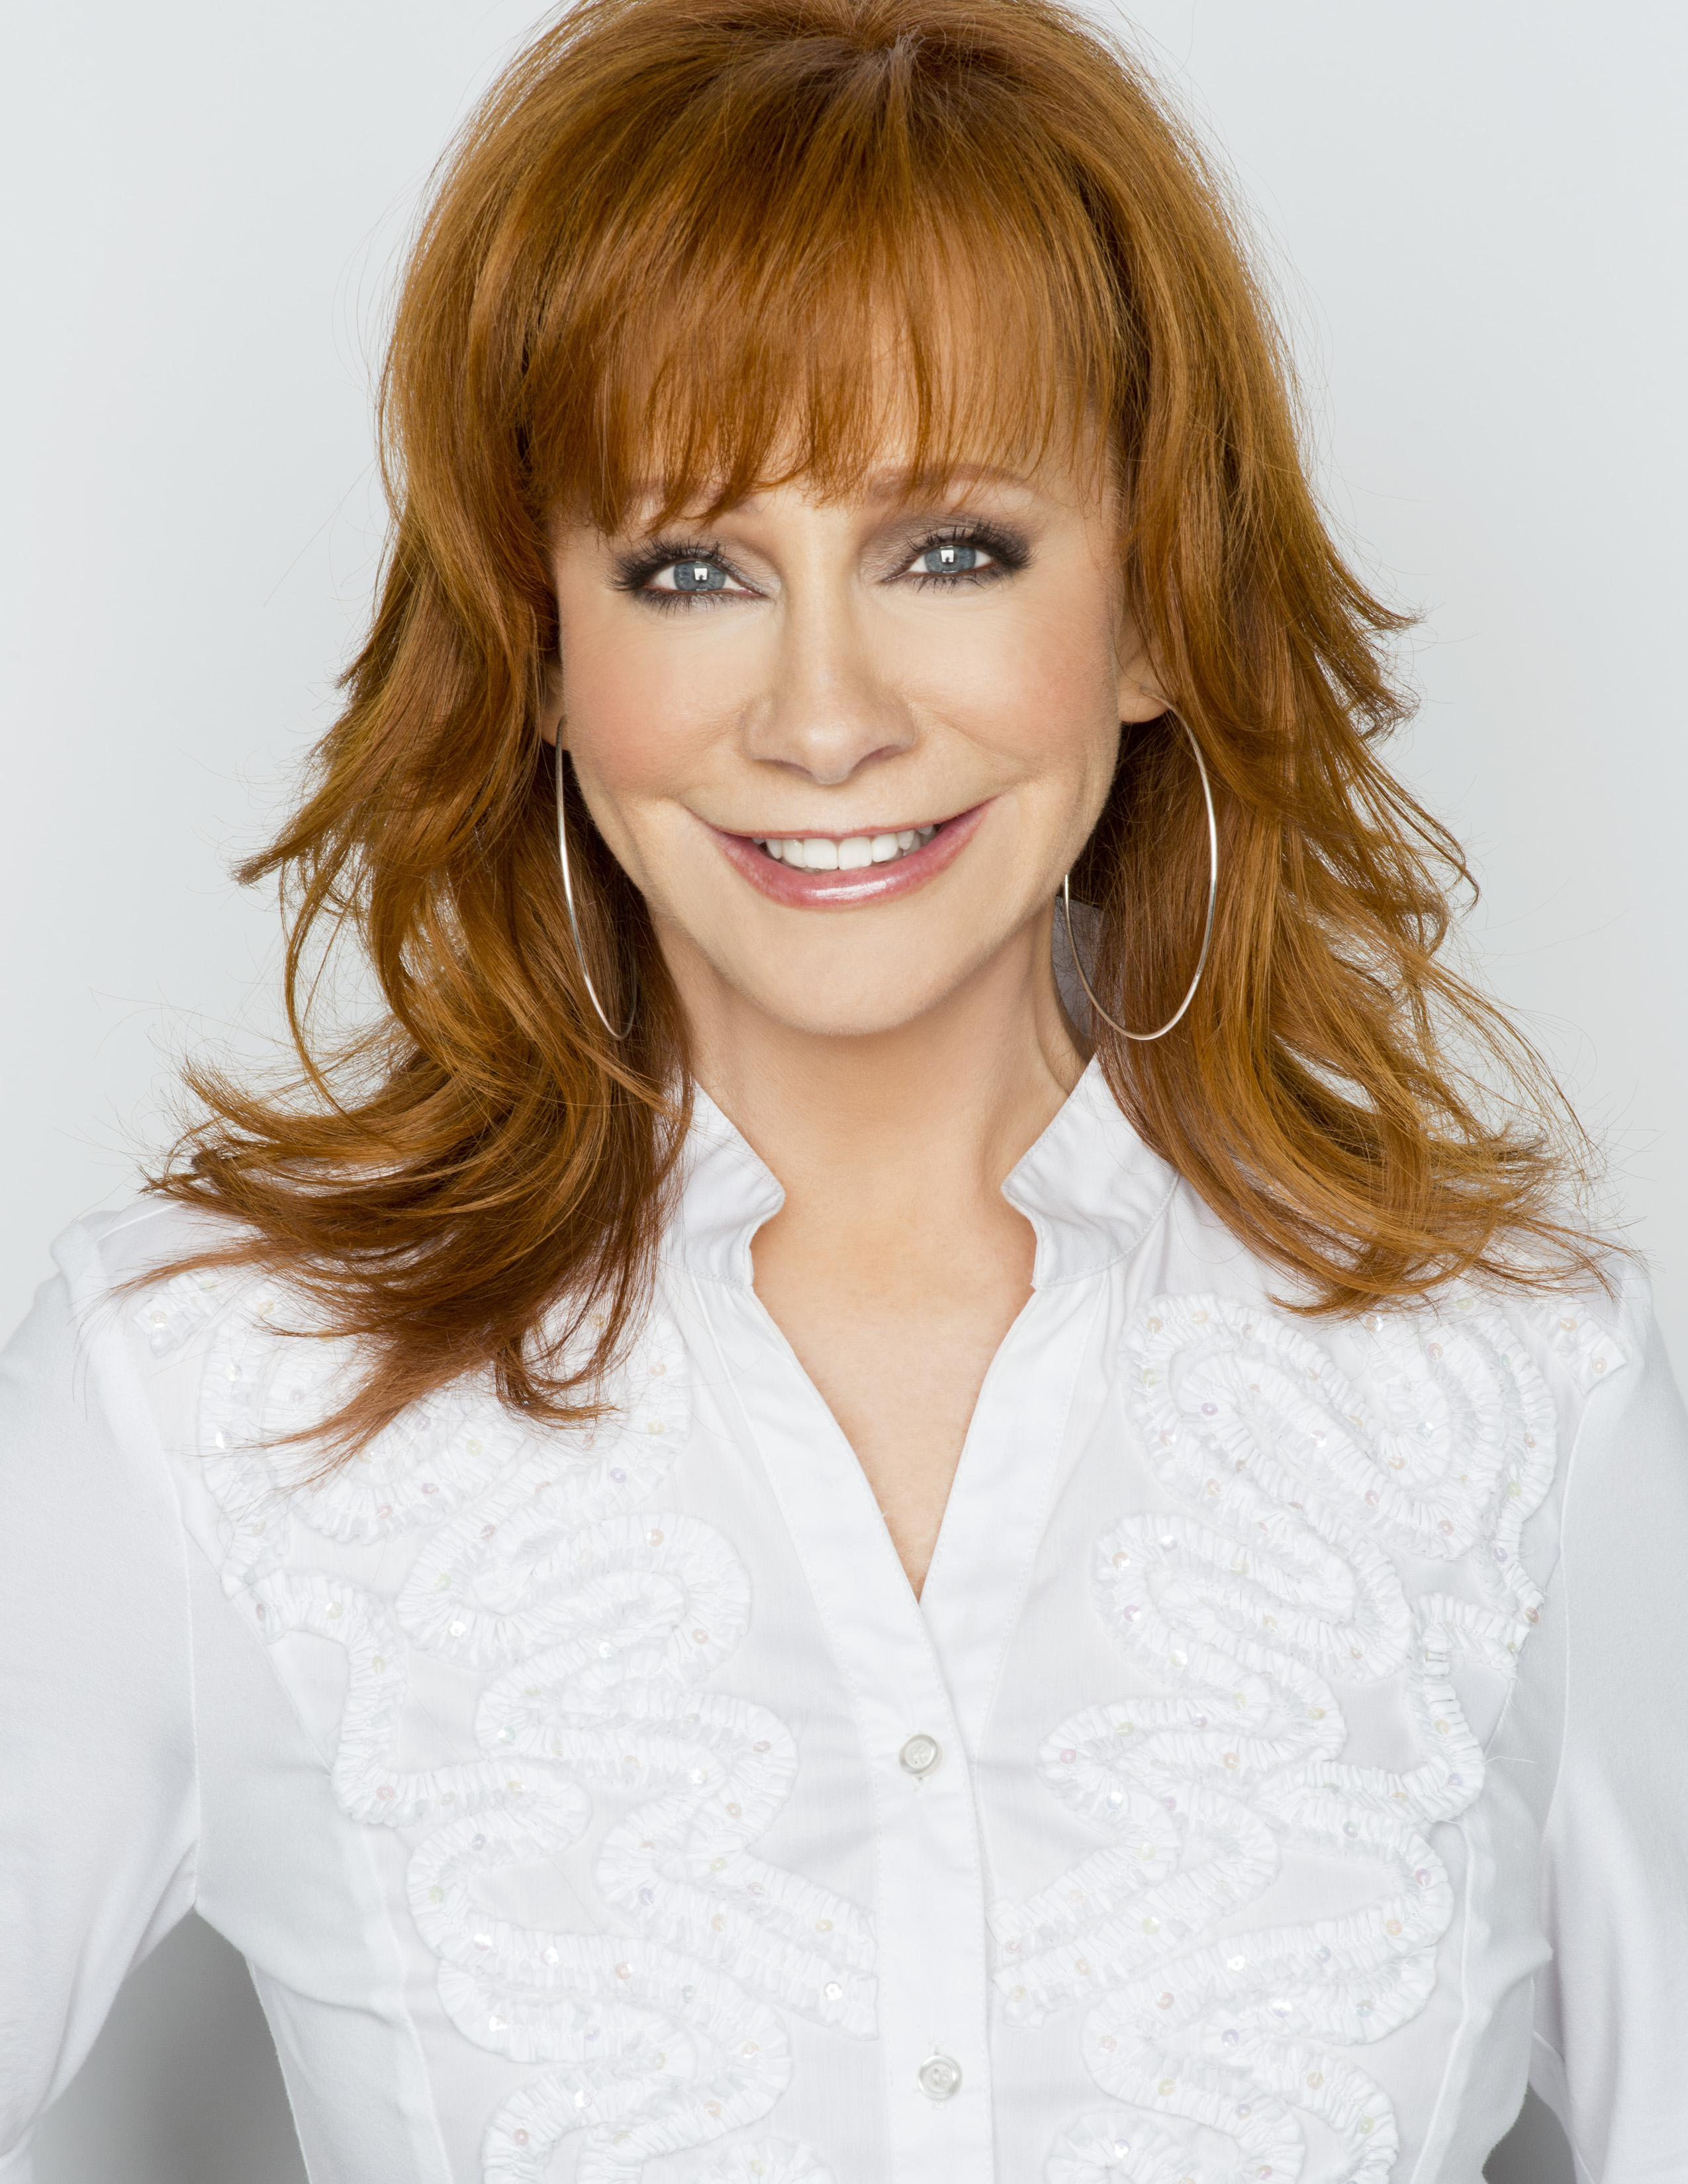 country singer, actress, musician Reba McEntire - age: 62